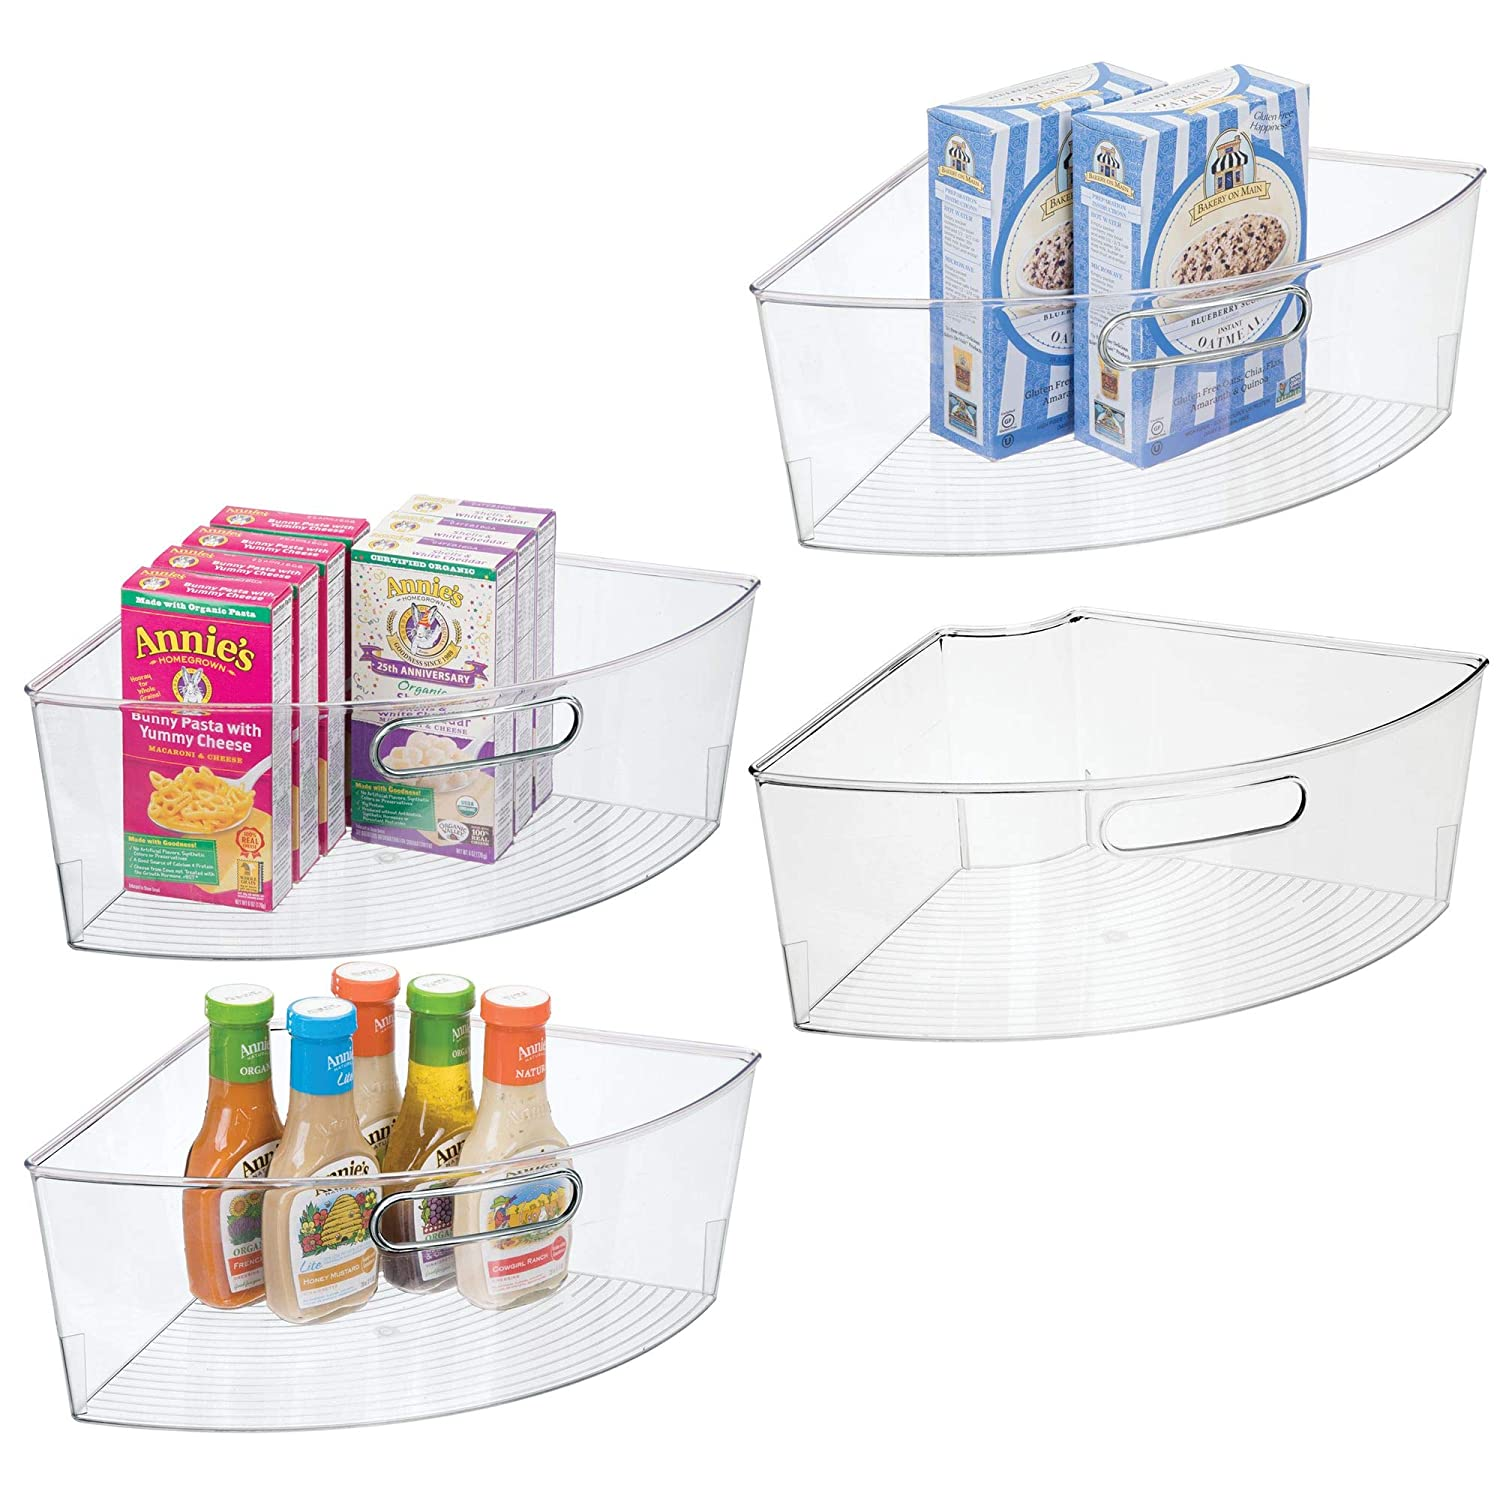 "mDesign Kitchen Cabinet Plastic Lazy Susan Storage Organizer Bins with Front Handle - Large Pie-Shaped 1/4 Wedge, 6"" Deep Container - Food Safe, BPA Free, 4 Pack - Clear"